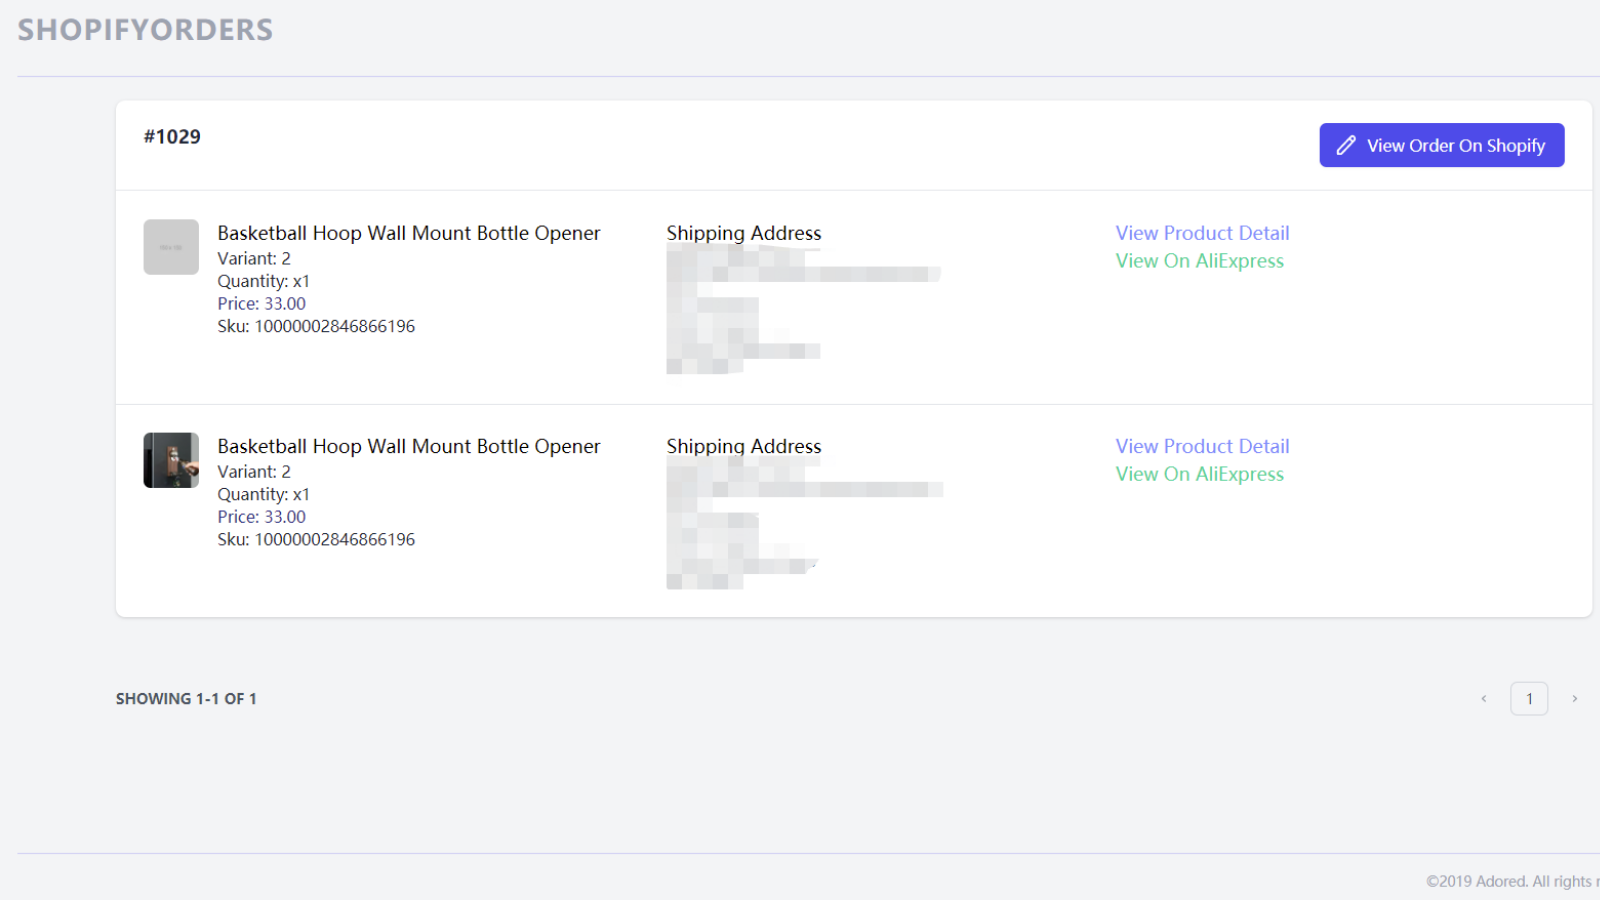 Orders synced from your store